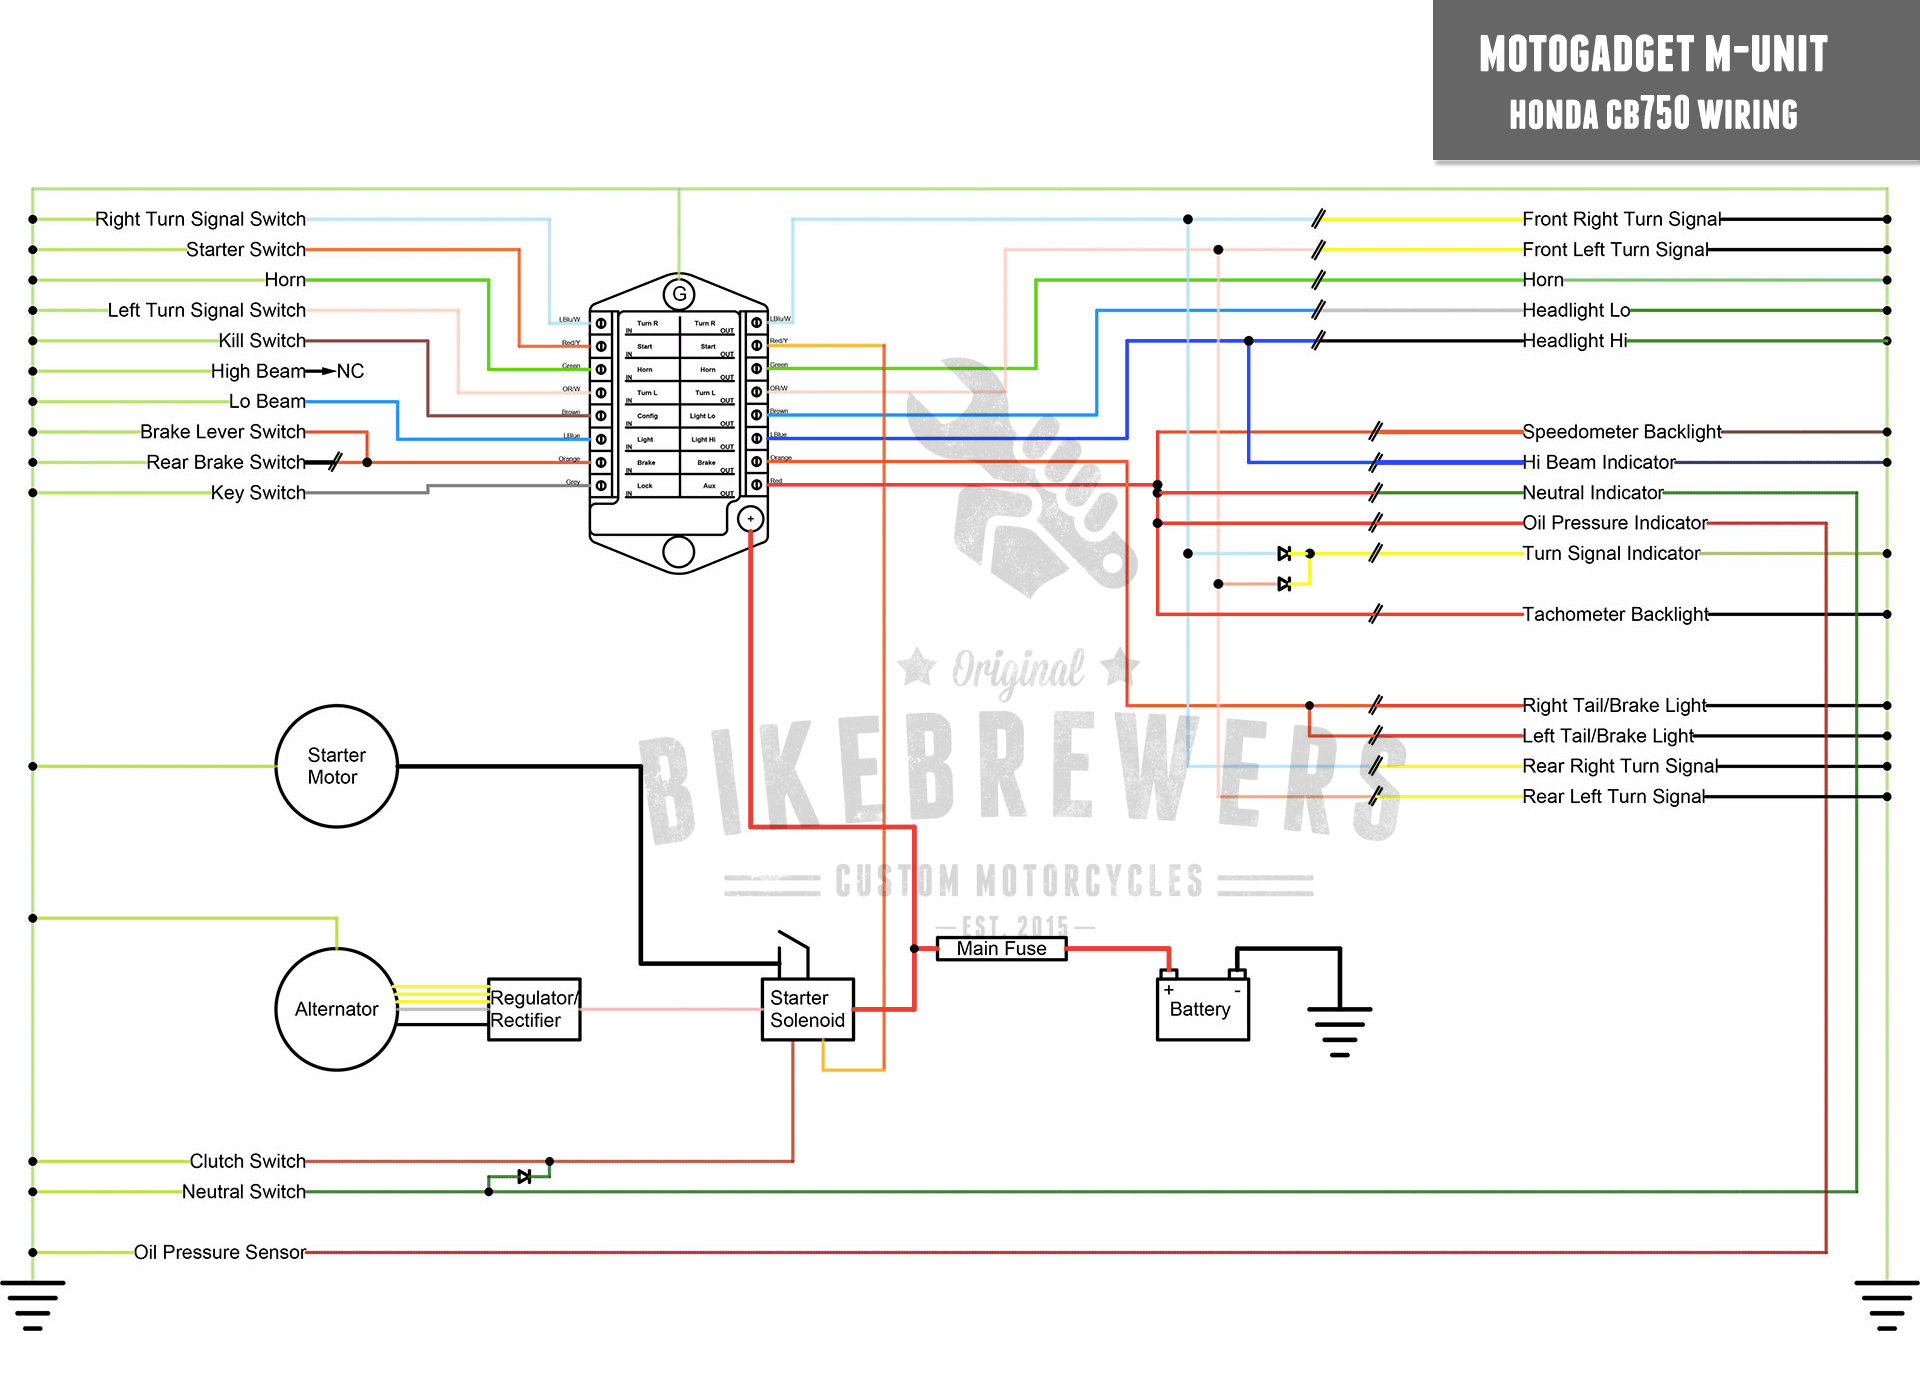 MotoGadget Wiring Honda CB750 cb750 wiring diagram honda c70 wiring diagram \u2022 free wiring  at edmiracle.co